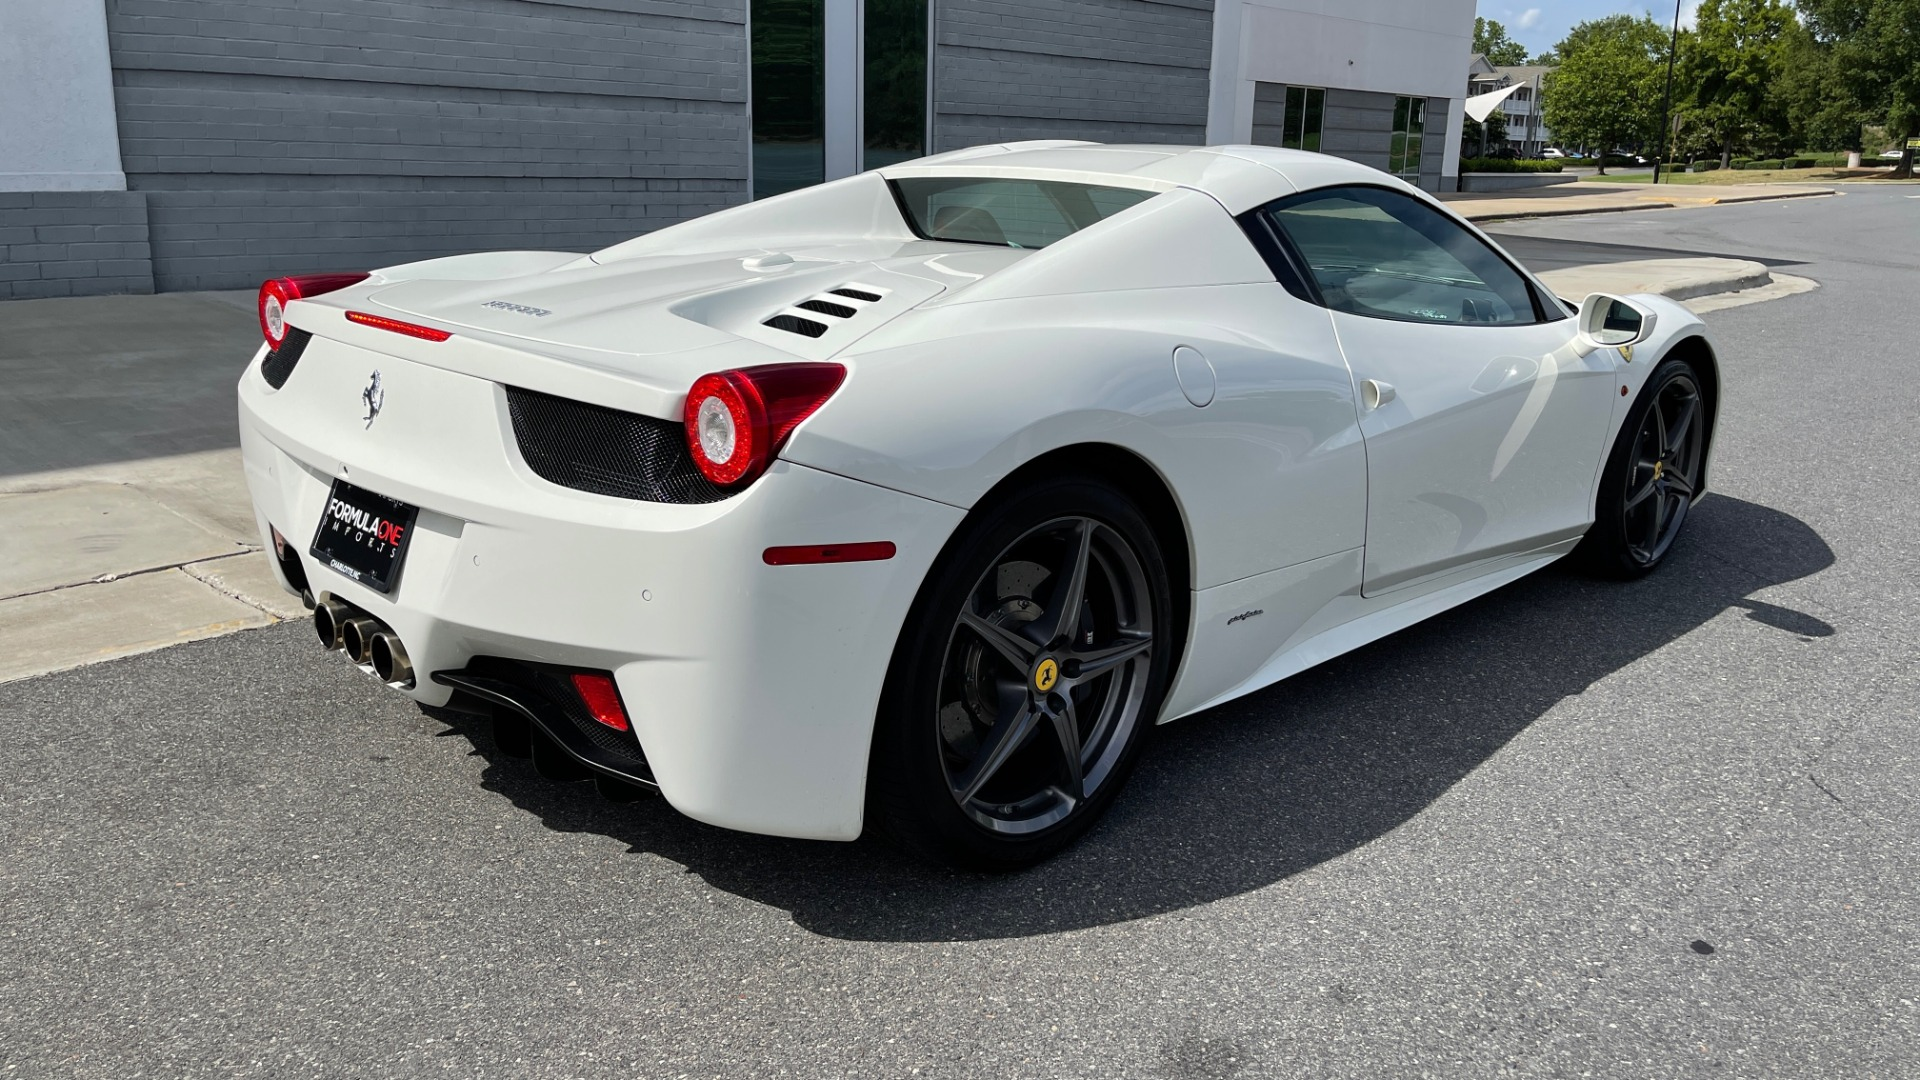 Used 2014 Ferrari 458 ITALIA SPIDER 570HP / F1 AUTO / CF SEATS / CARBON BRAKES / REARVIEW for sale $249,999 at Formula Imports in Charlotte NC 28227 2